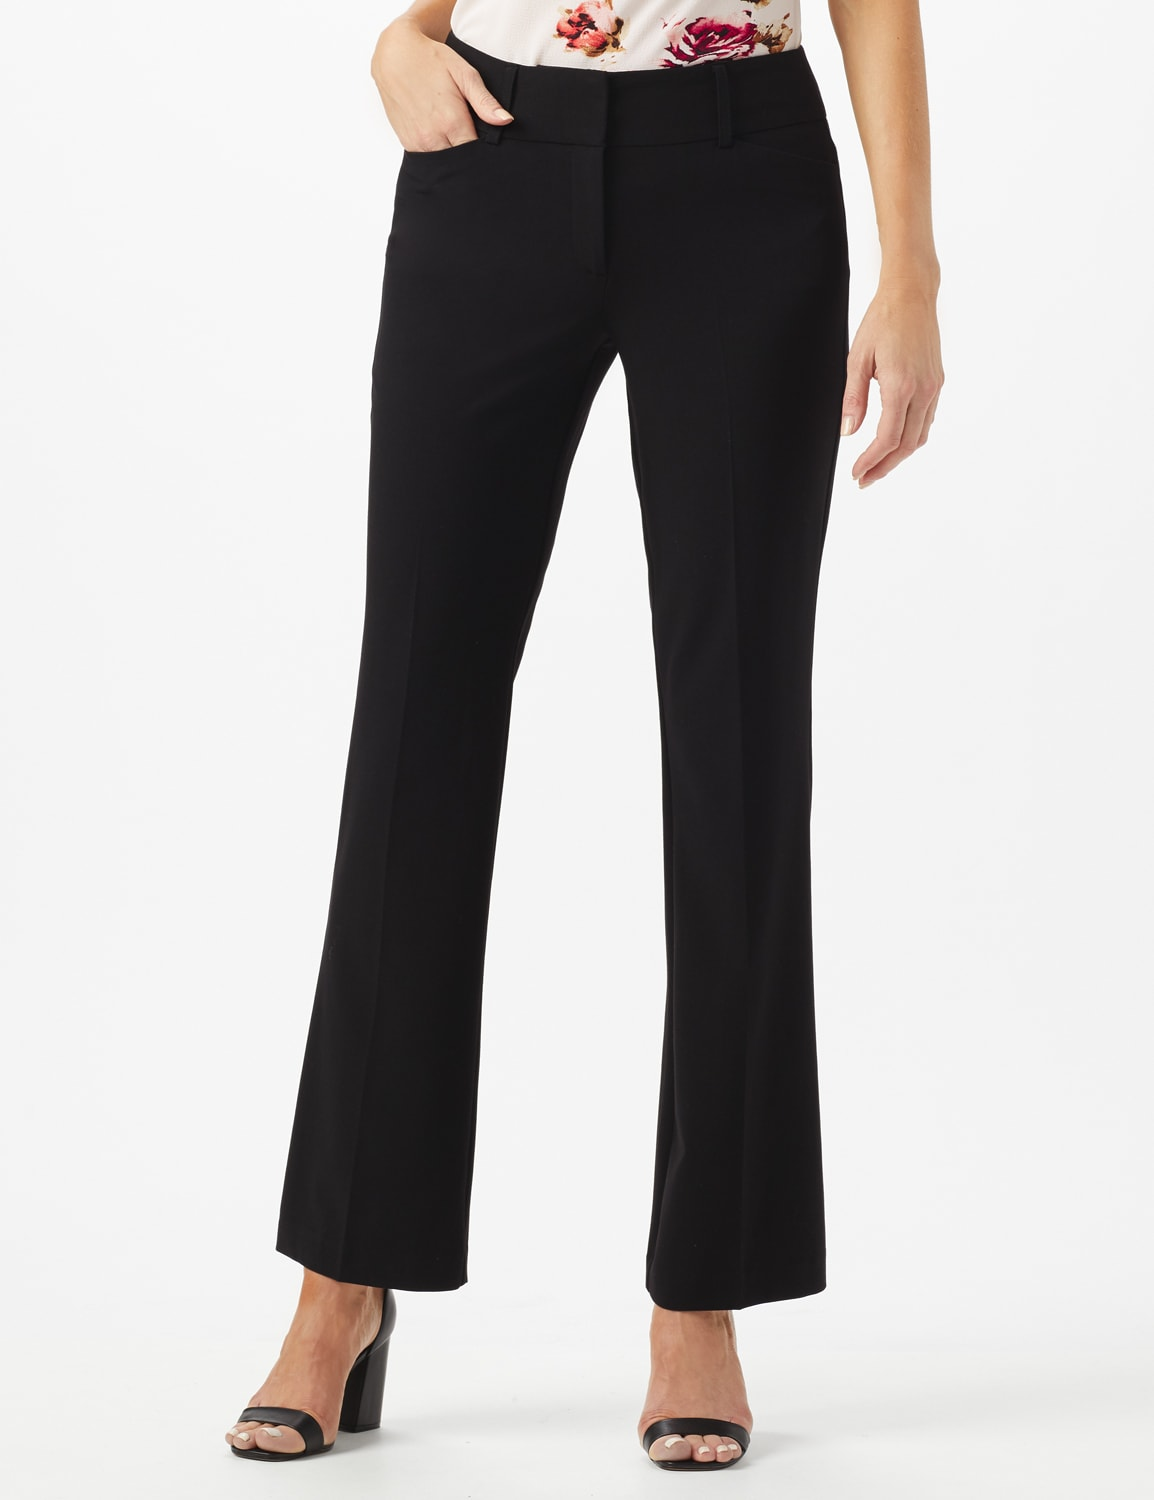 Roz & Ali  SECRET AGENT TROUSER WITH CATEYE POCKET & ZIP - Black - Front